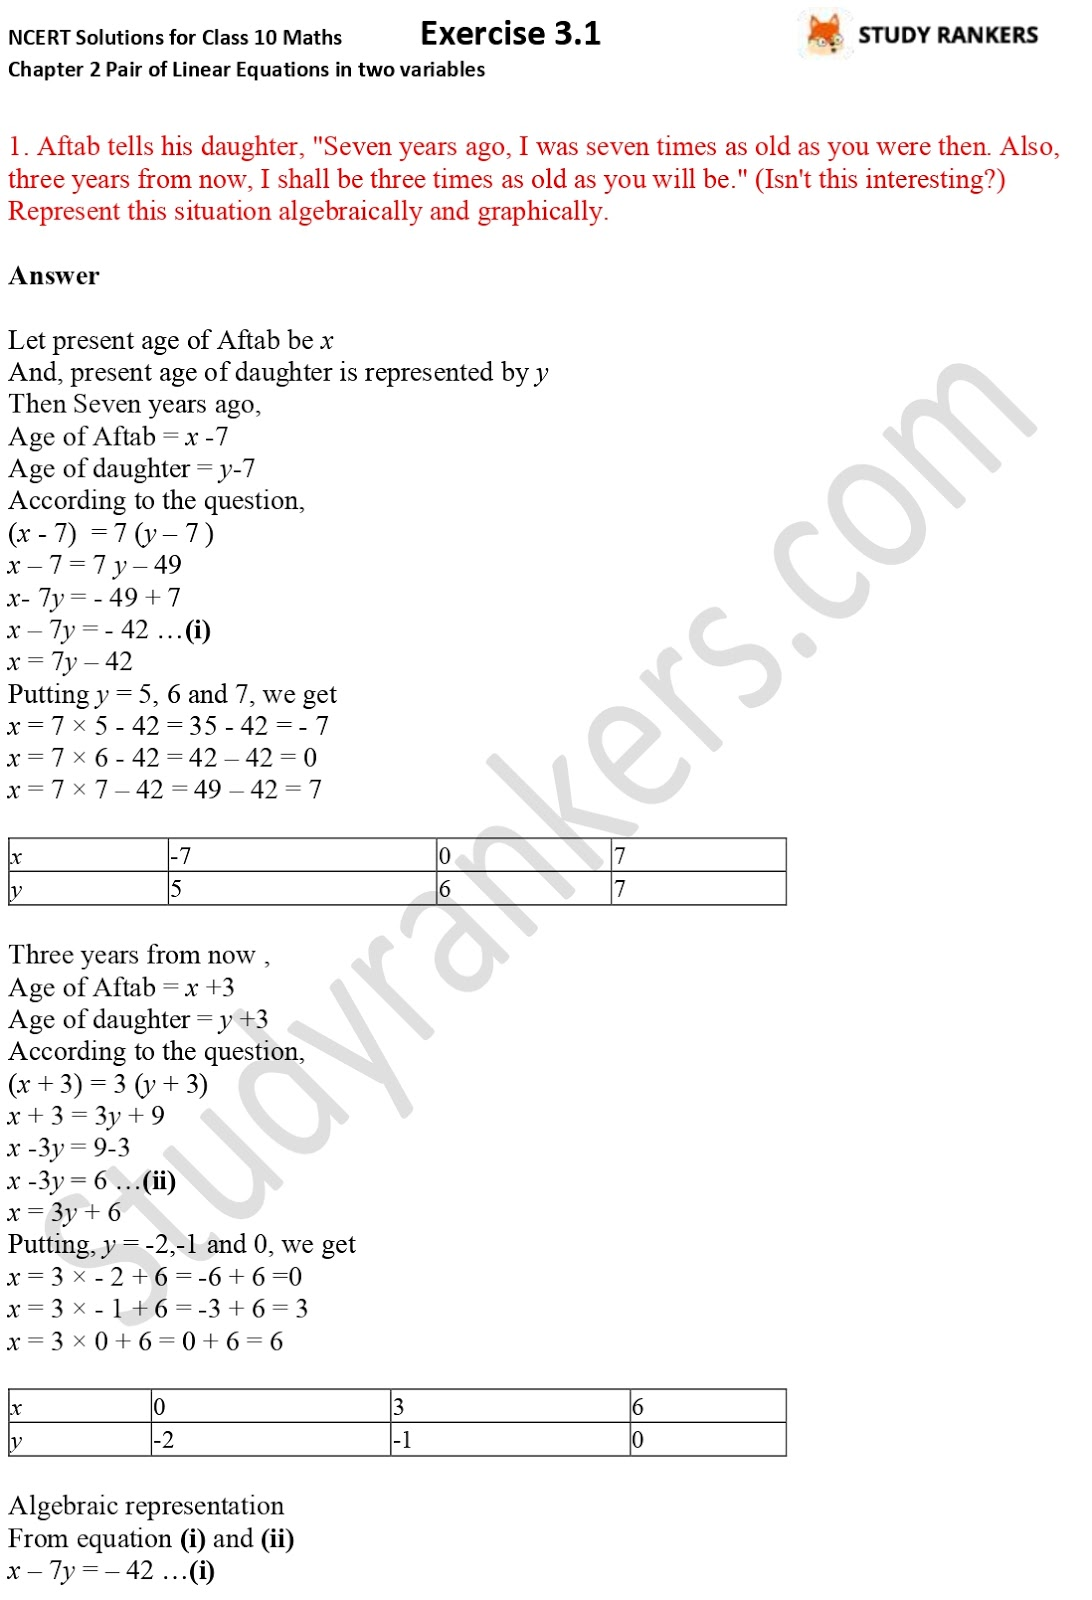 NCERT Solutions for Class 10 Maths Chapter 3 Pair of Linear Equations in Two Variables Exercise 3.1 Part 1